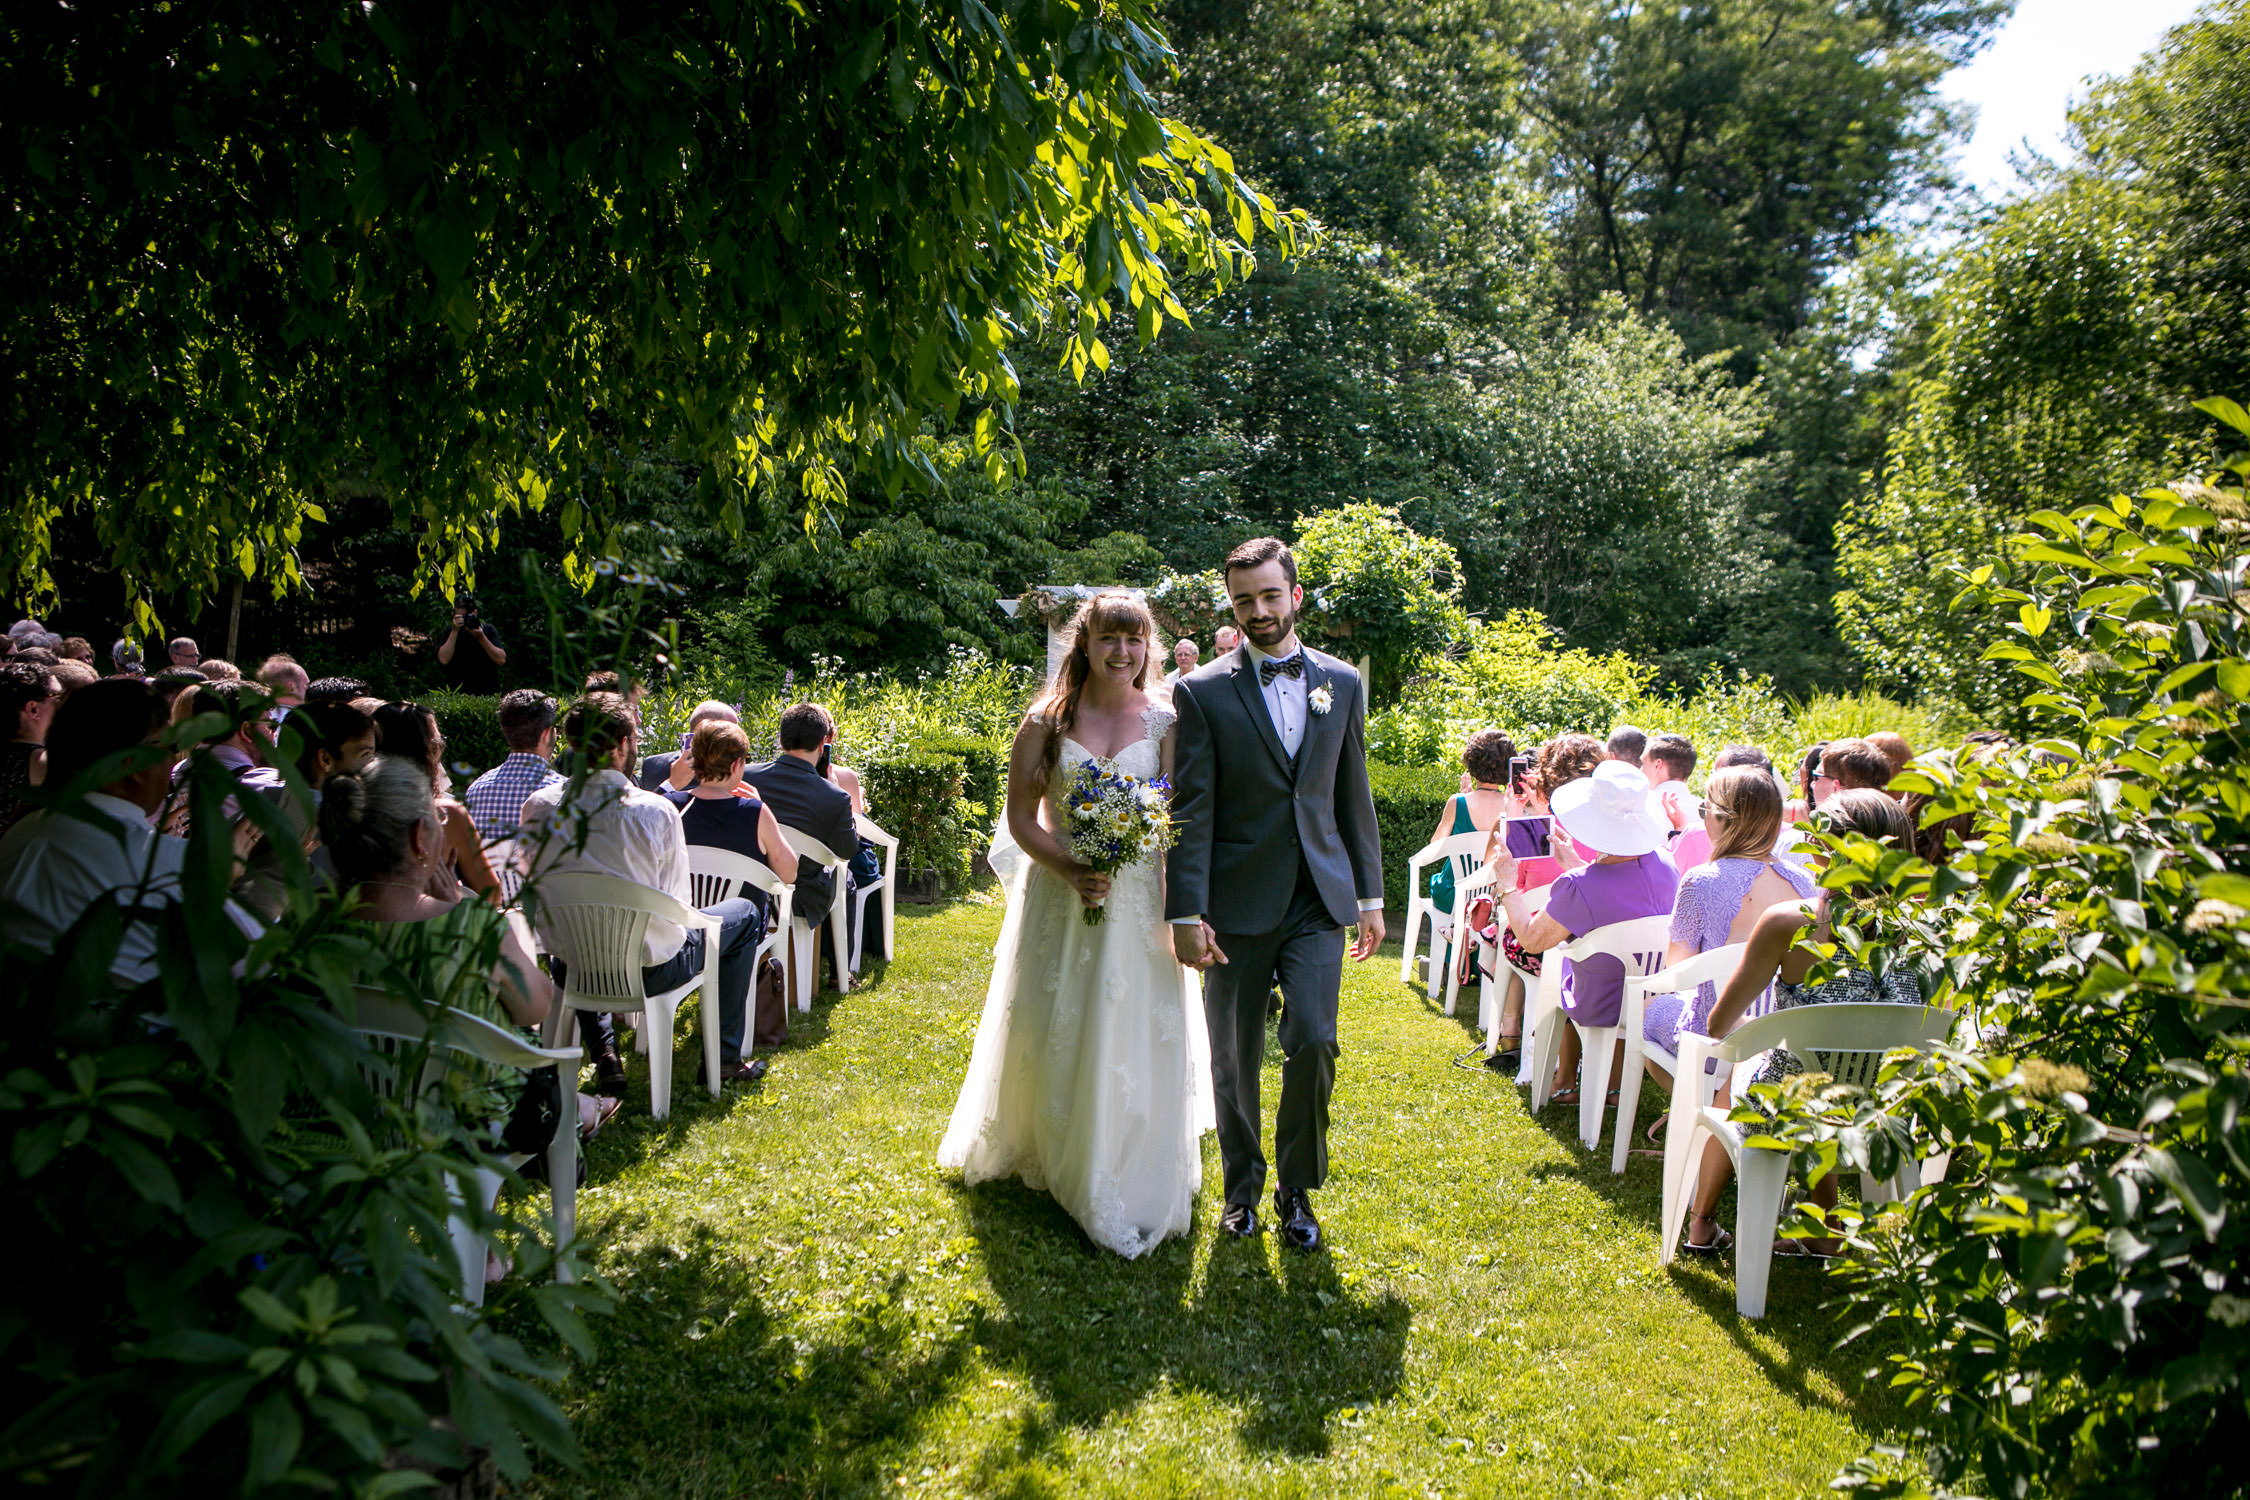 hartmans herb farm weddings, happy exit of bride and groom